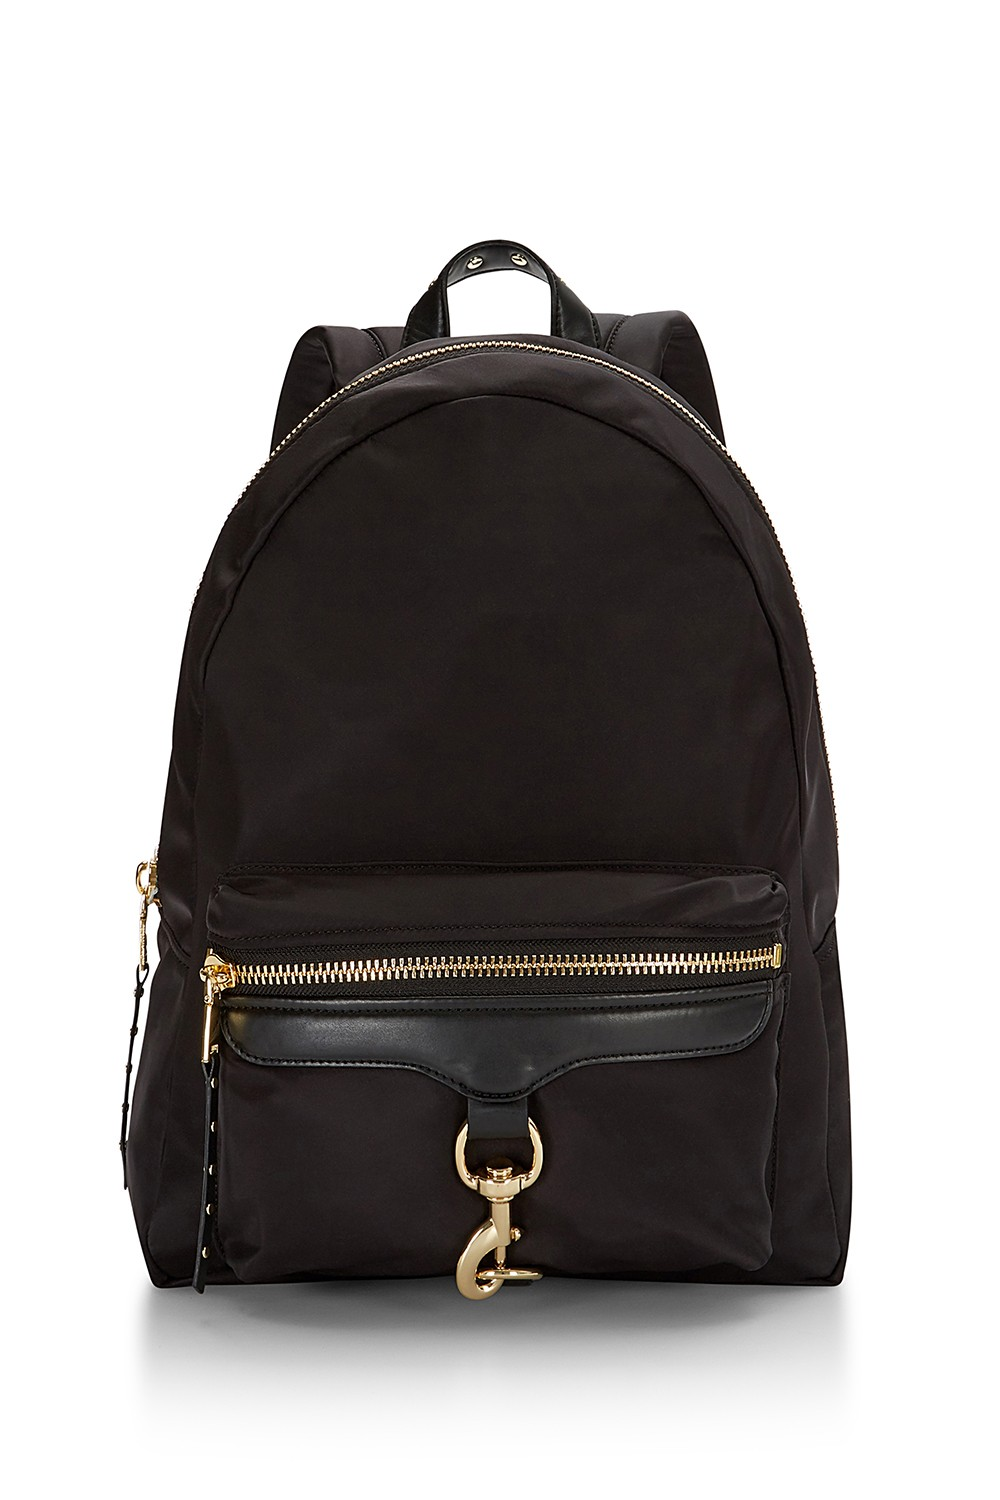 Rebecca Minkoff Always On M.A.B. Backpack - 8 Chic Tech Accessories